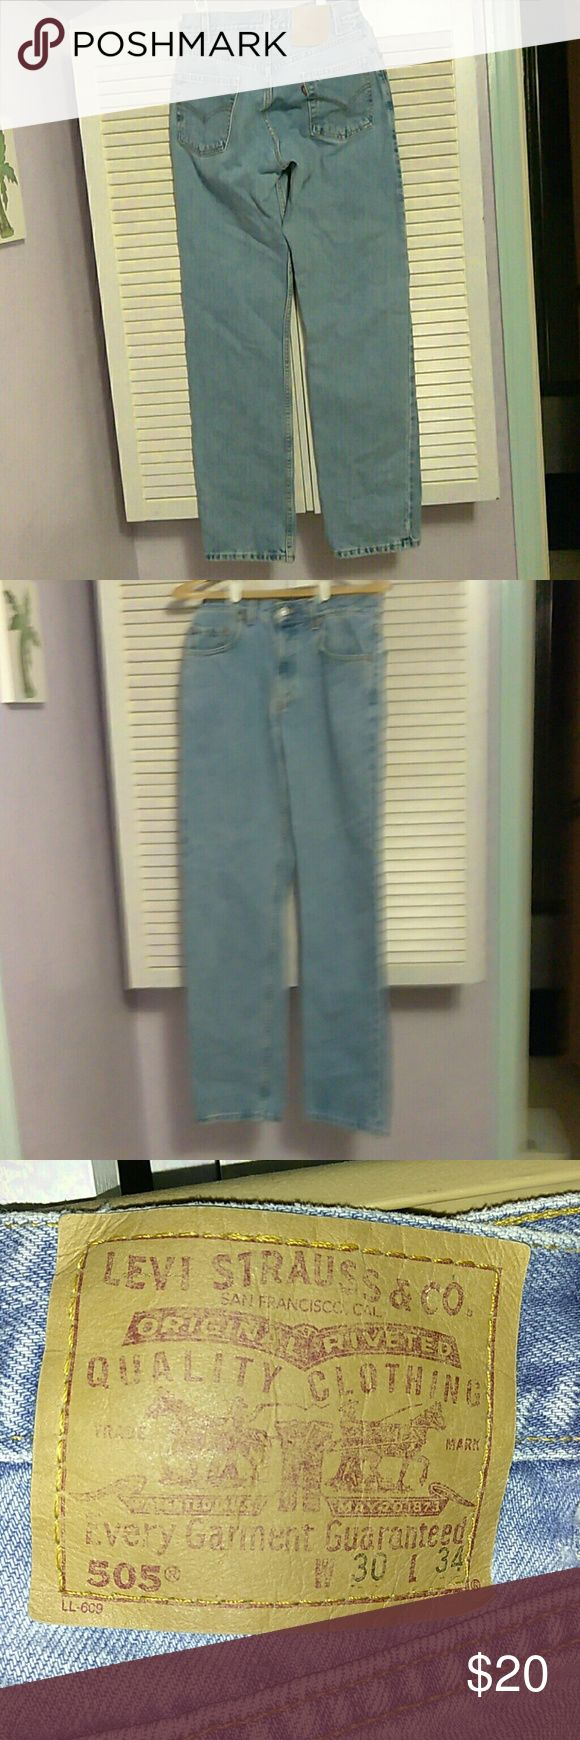 """Levis jeans 505 regular straight leg 30x34. Vintage Levis 505 jeans 30x34. These do not have """"stretch"""" in the material like most are made now. Excellent condition, no frays around pockets or on bottom of legs. levis Jeans Straight Leg"""